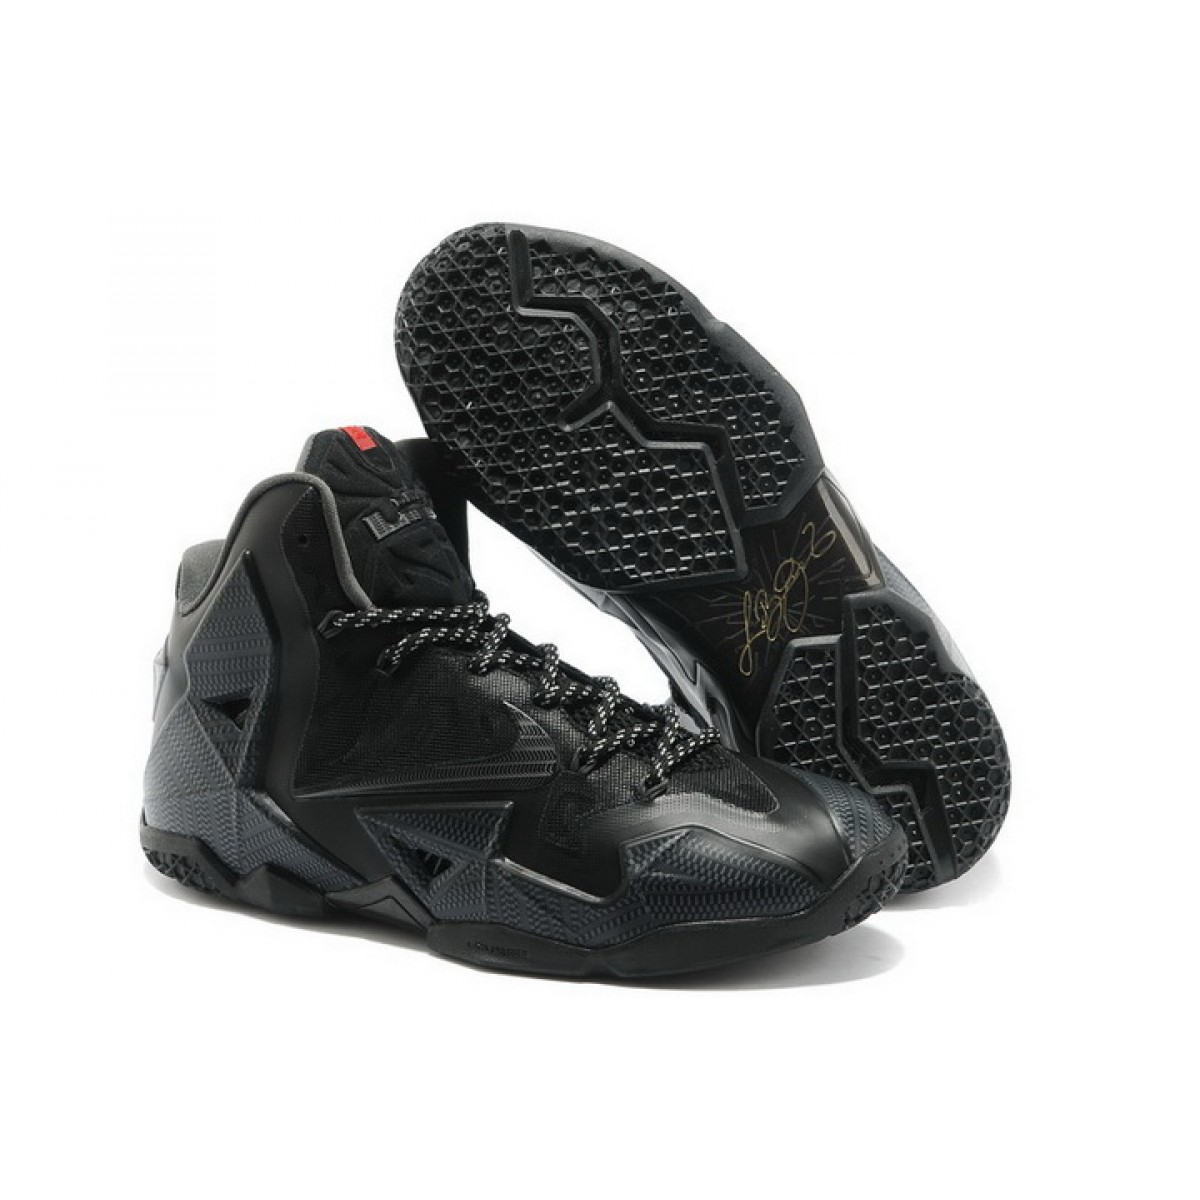 New Nike Lebron 11 All In Black Shoes On Sale